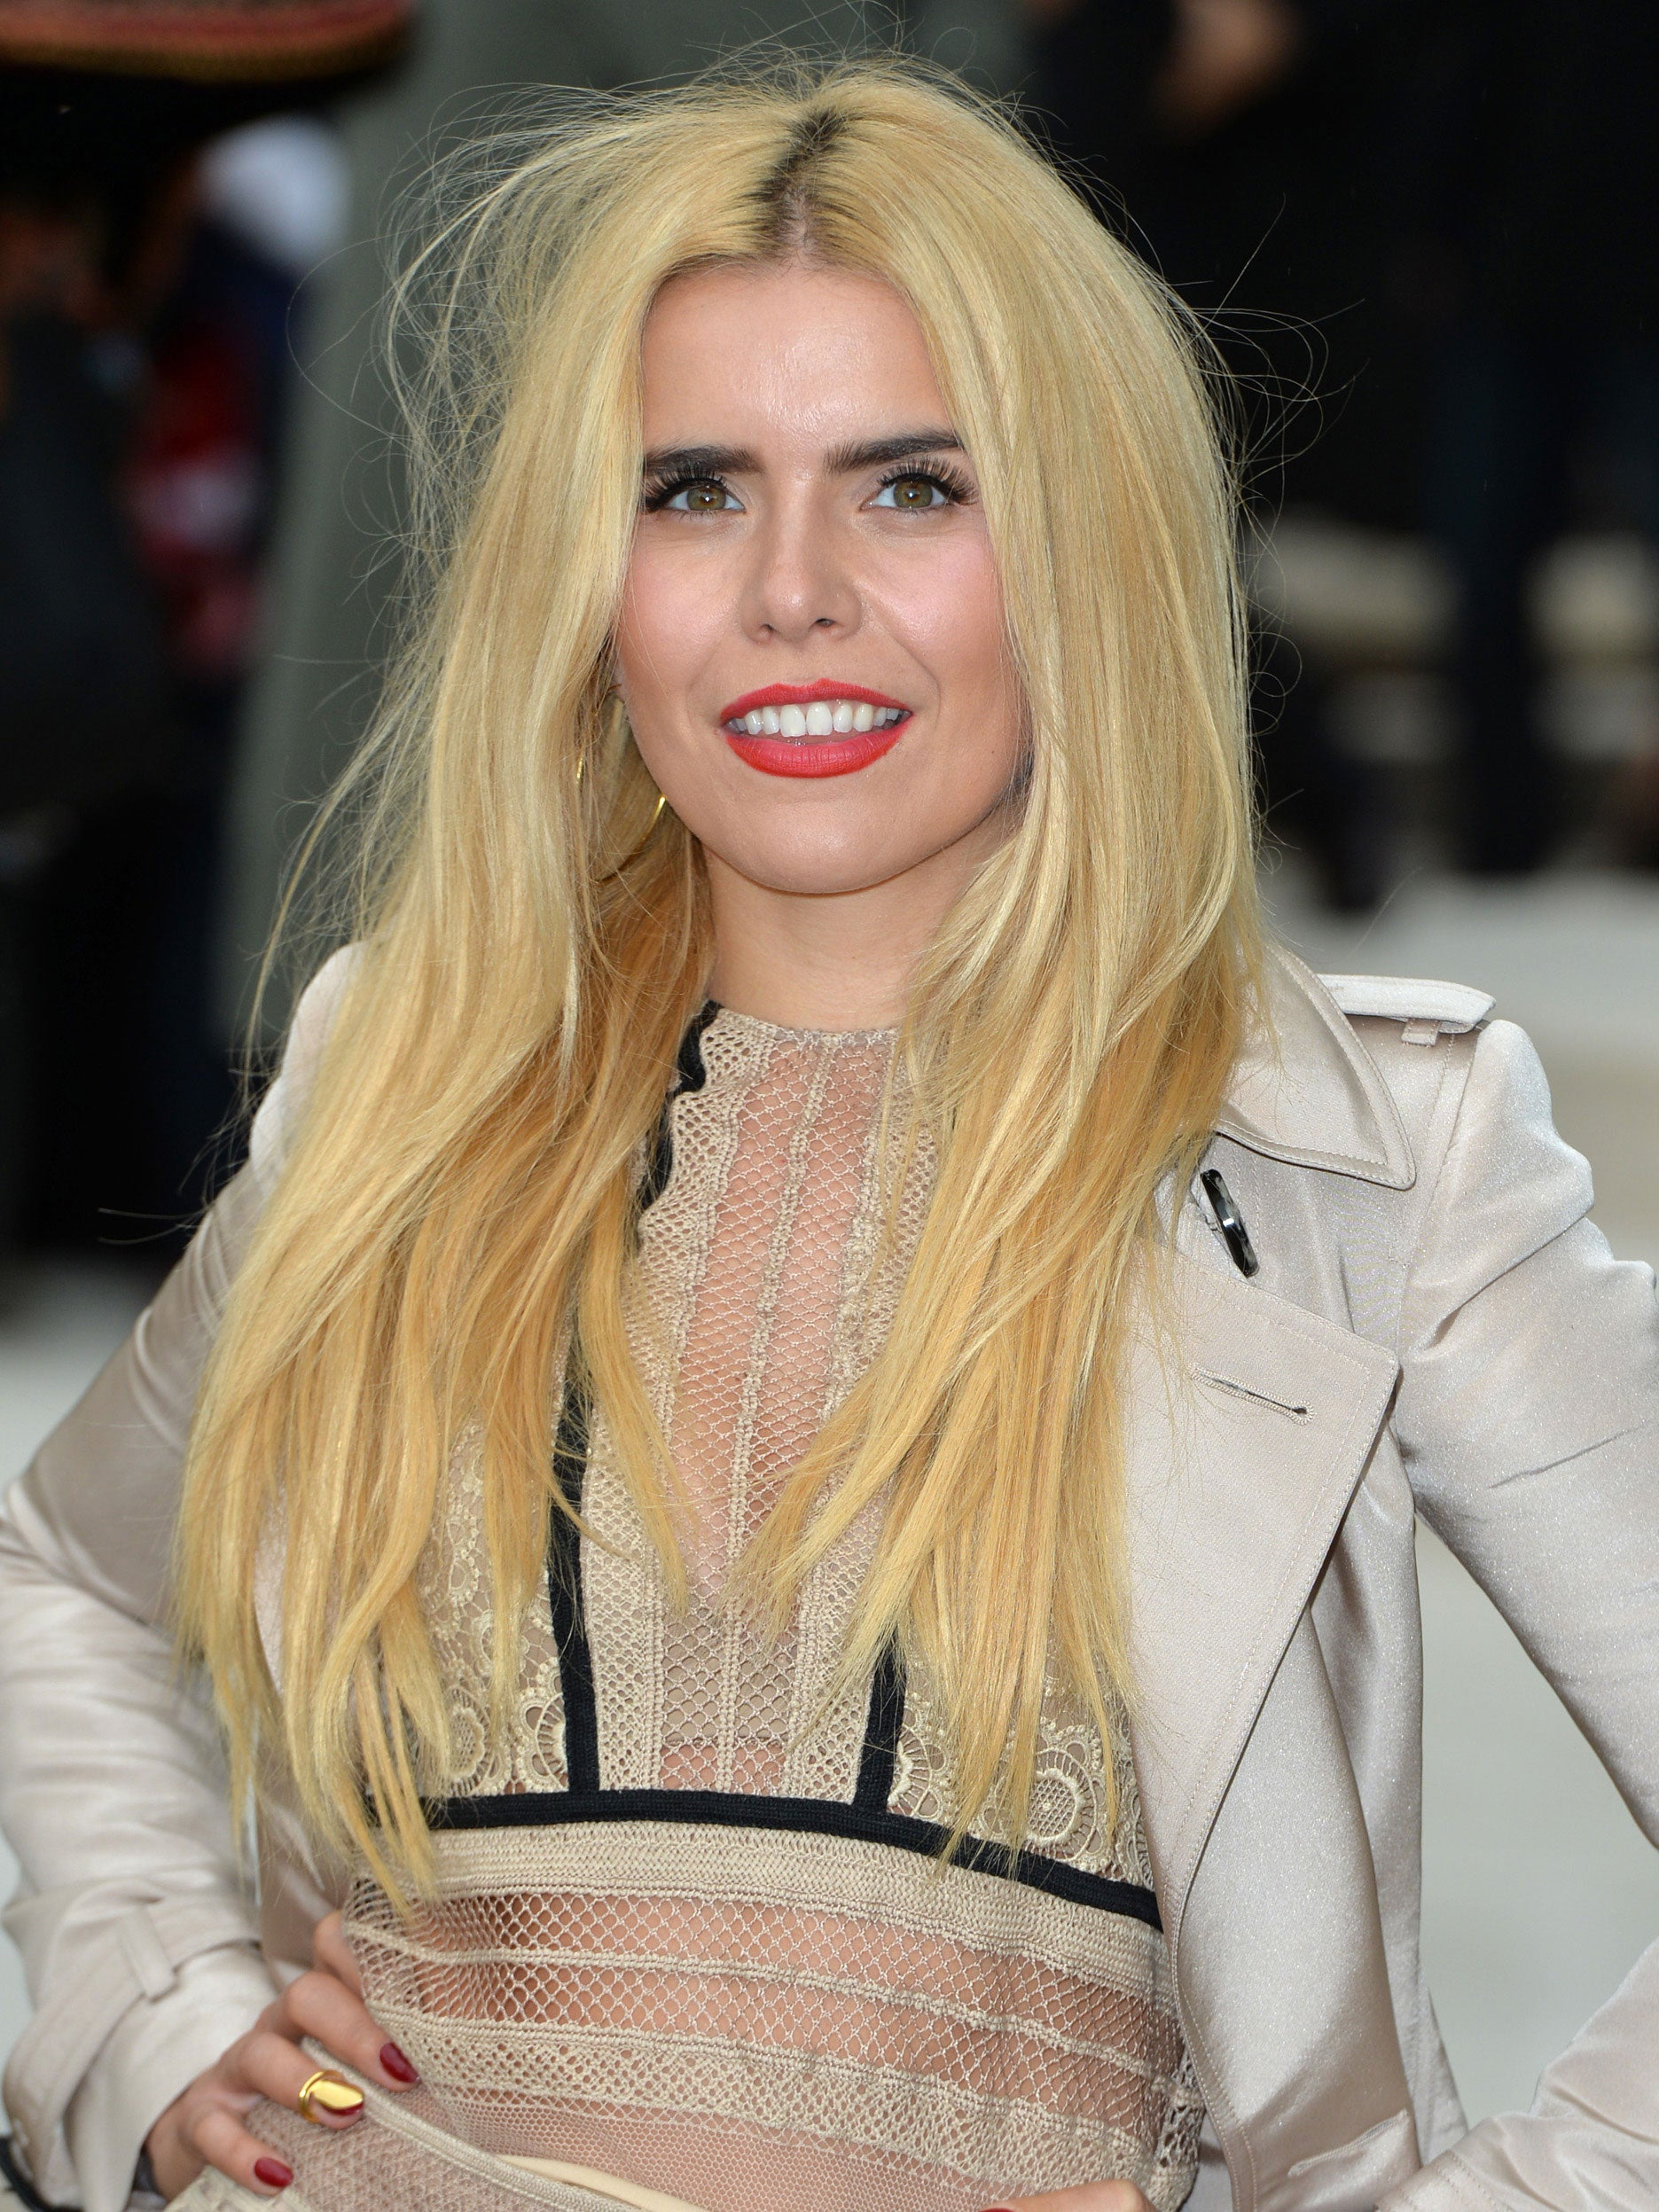 Paloma Faith nudes (89 foto), Is a cute Sexy, Twitter, bra 2018